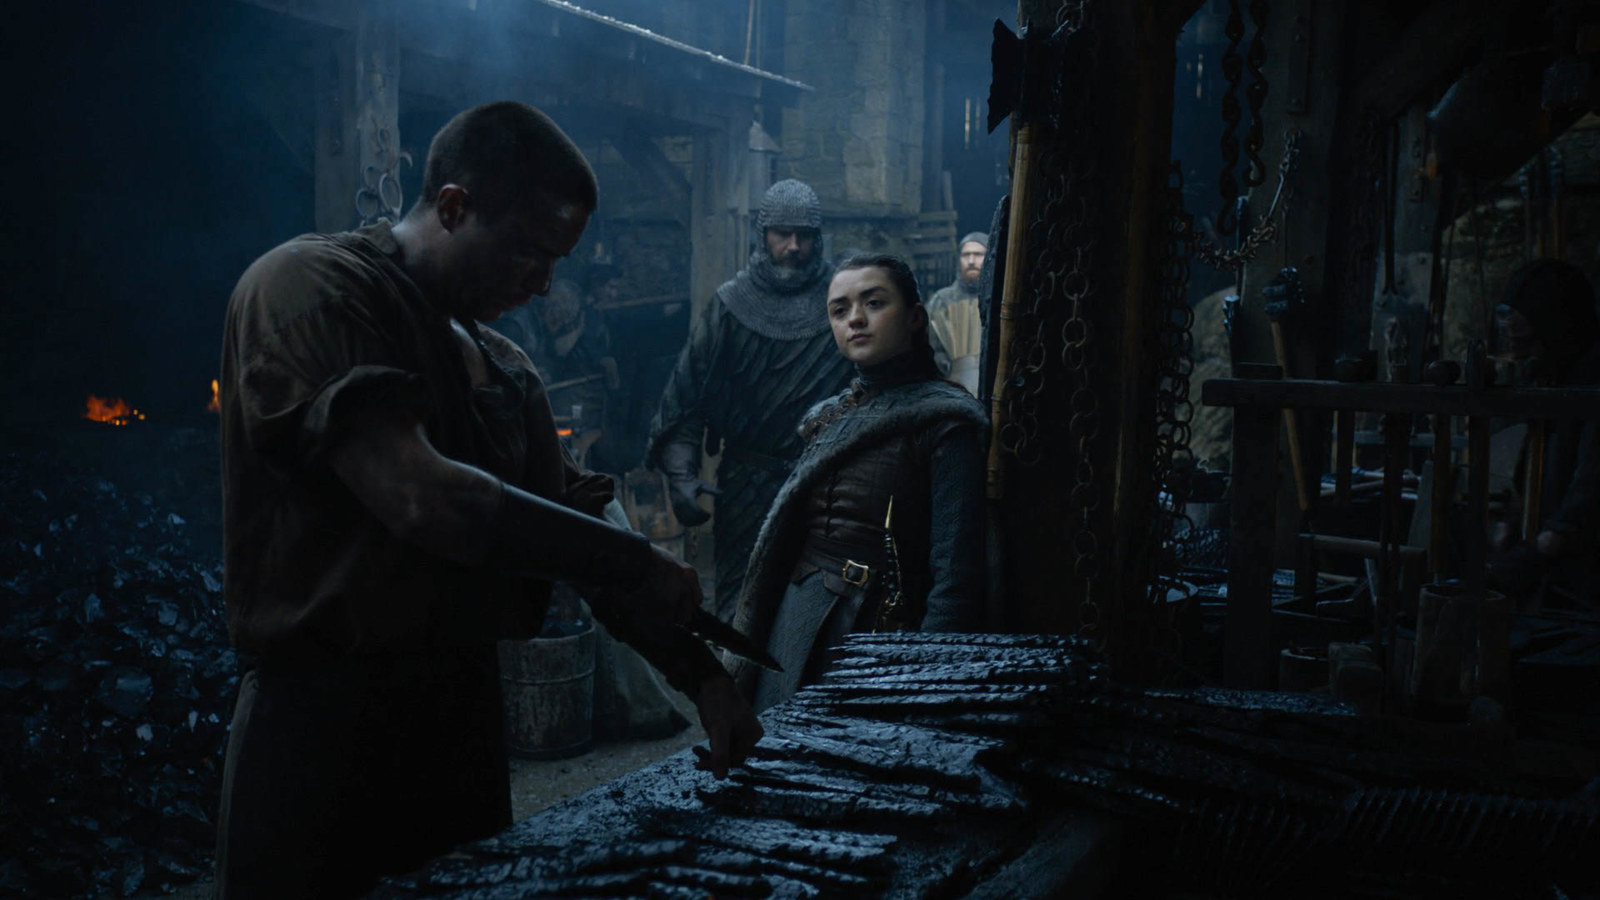 Maisie Williams Revealed What It Was Like Filming Arya's Scene With Gendry